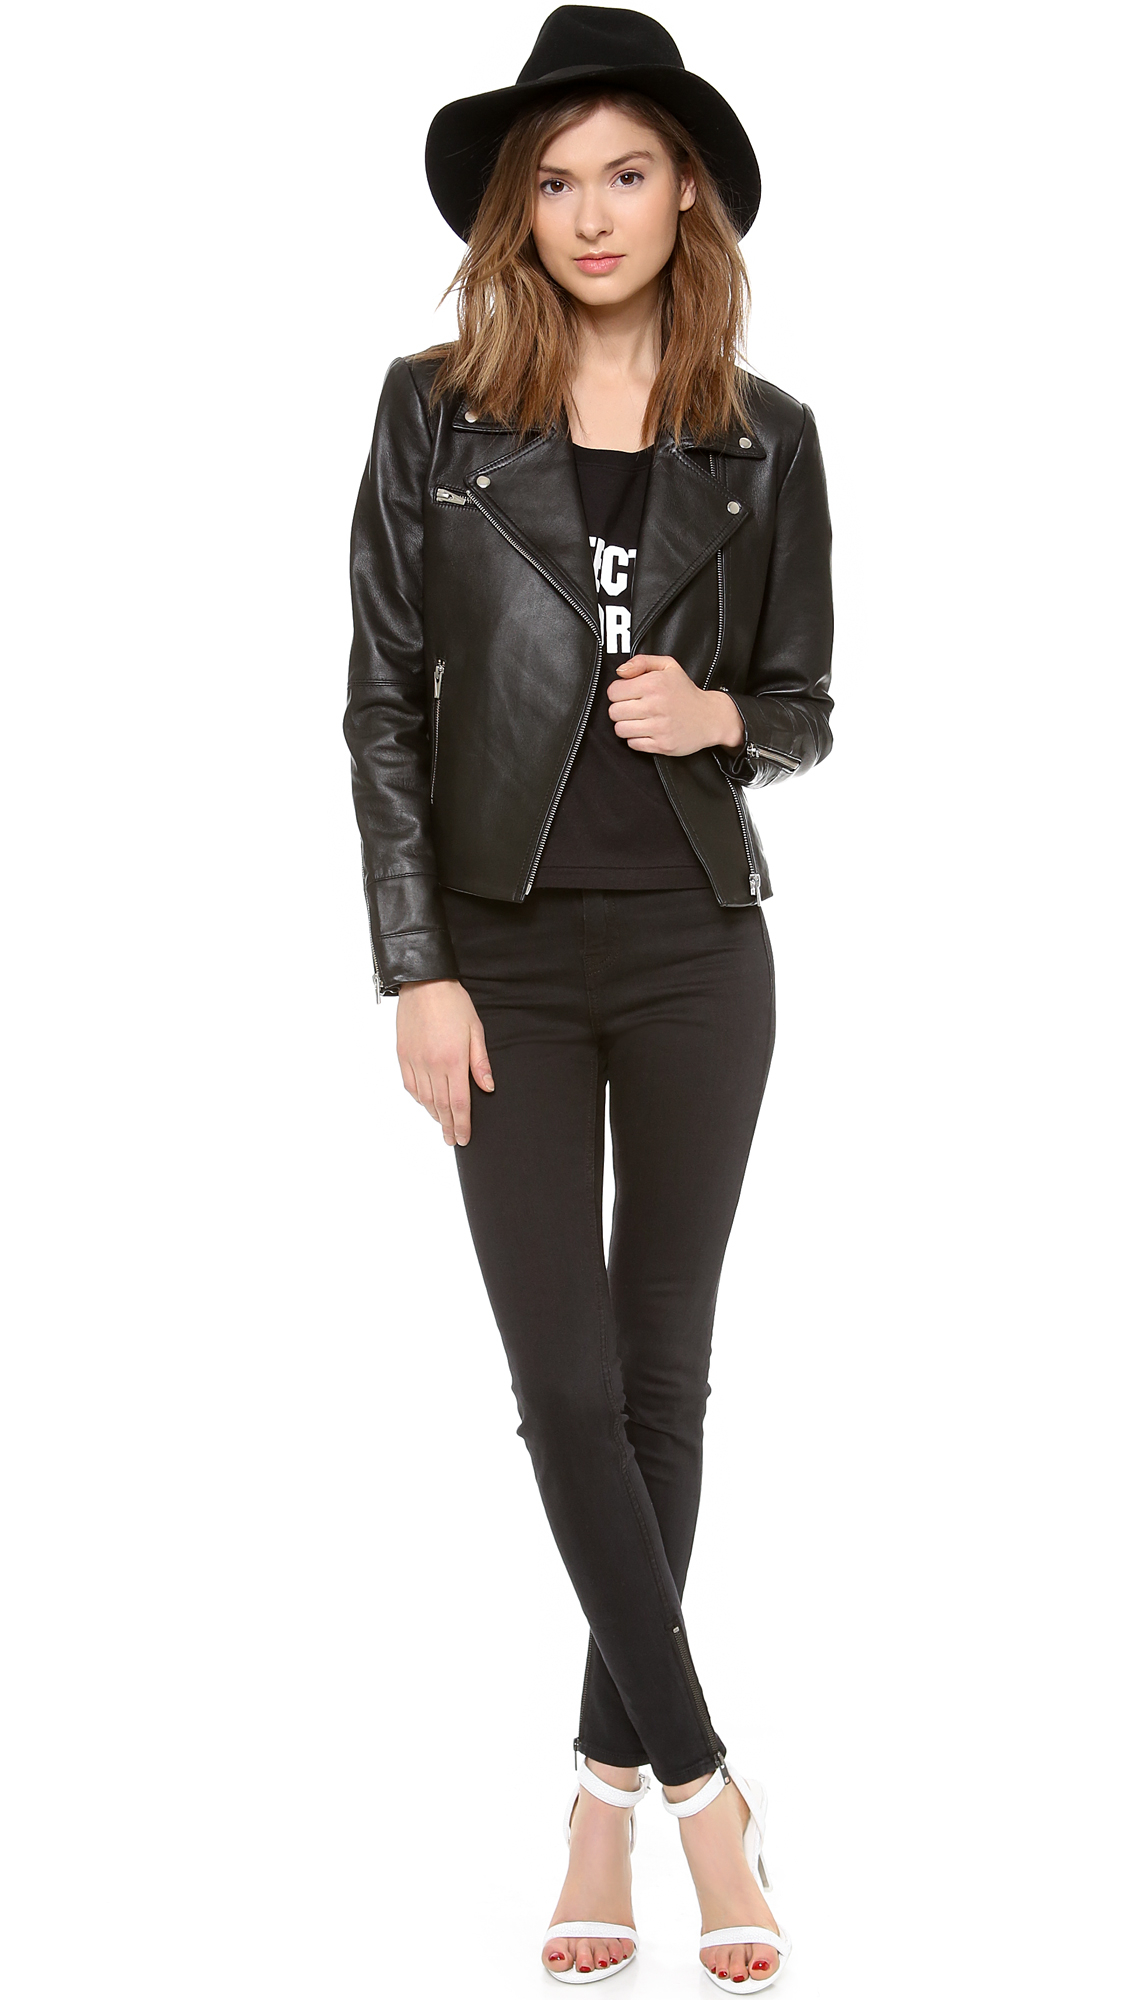 Veda Next Leather Jacket - Black in Black | Lyst